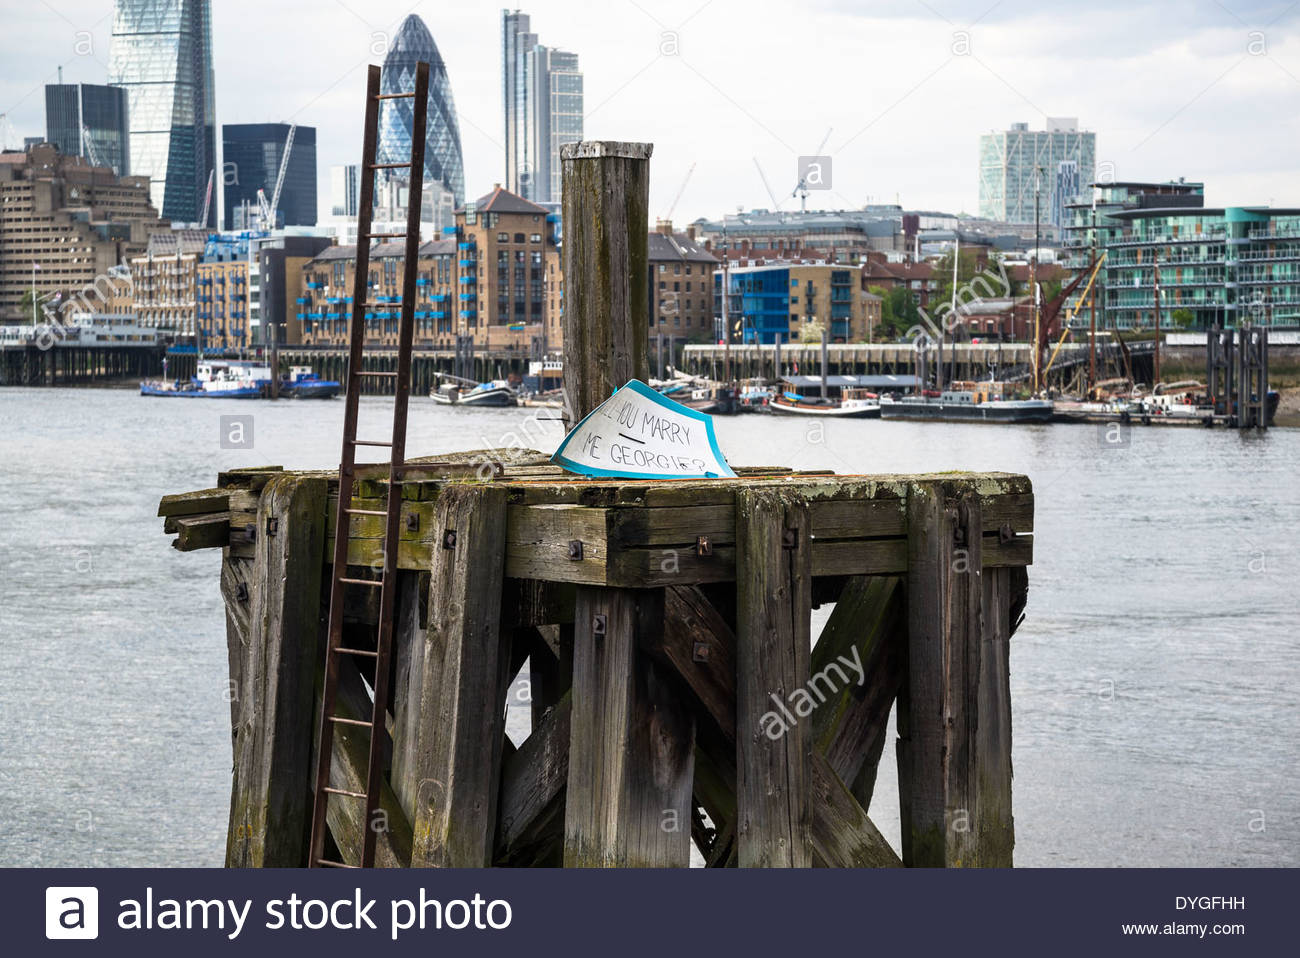 Marriage proposal note on the Thames, London, UK - Stock Image